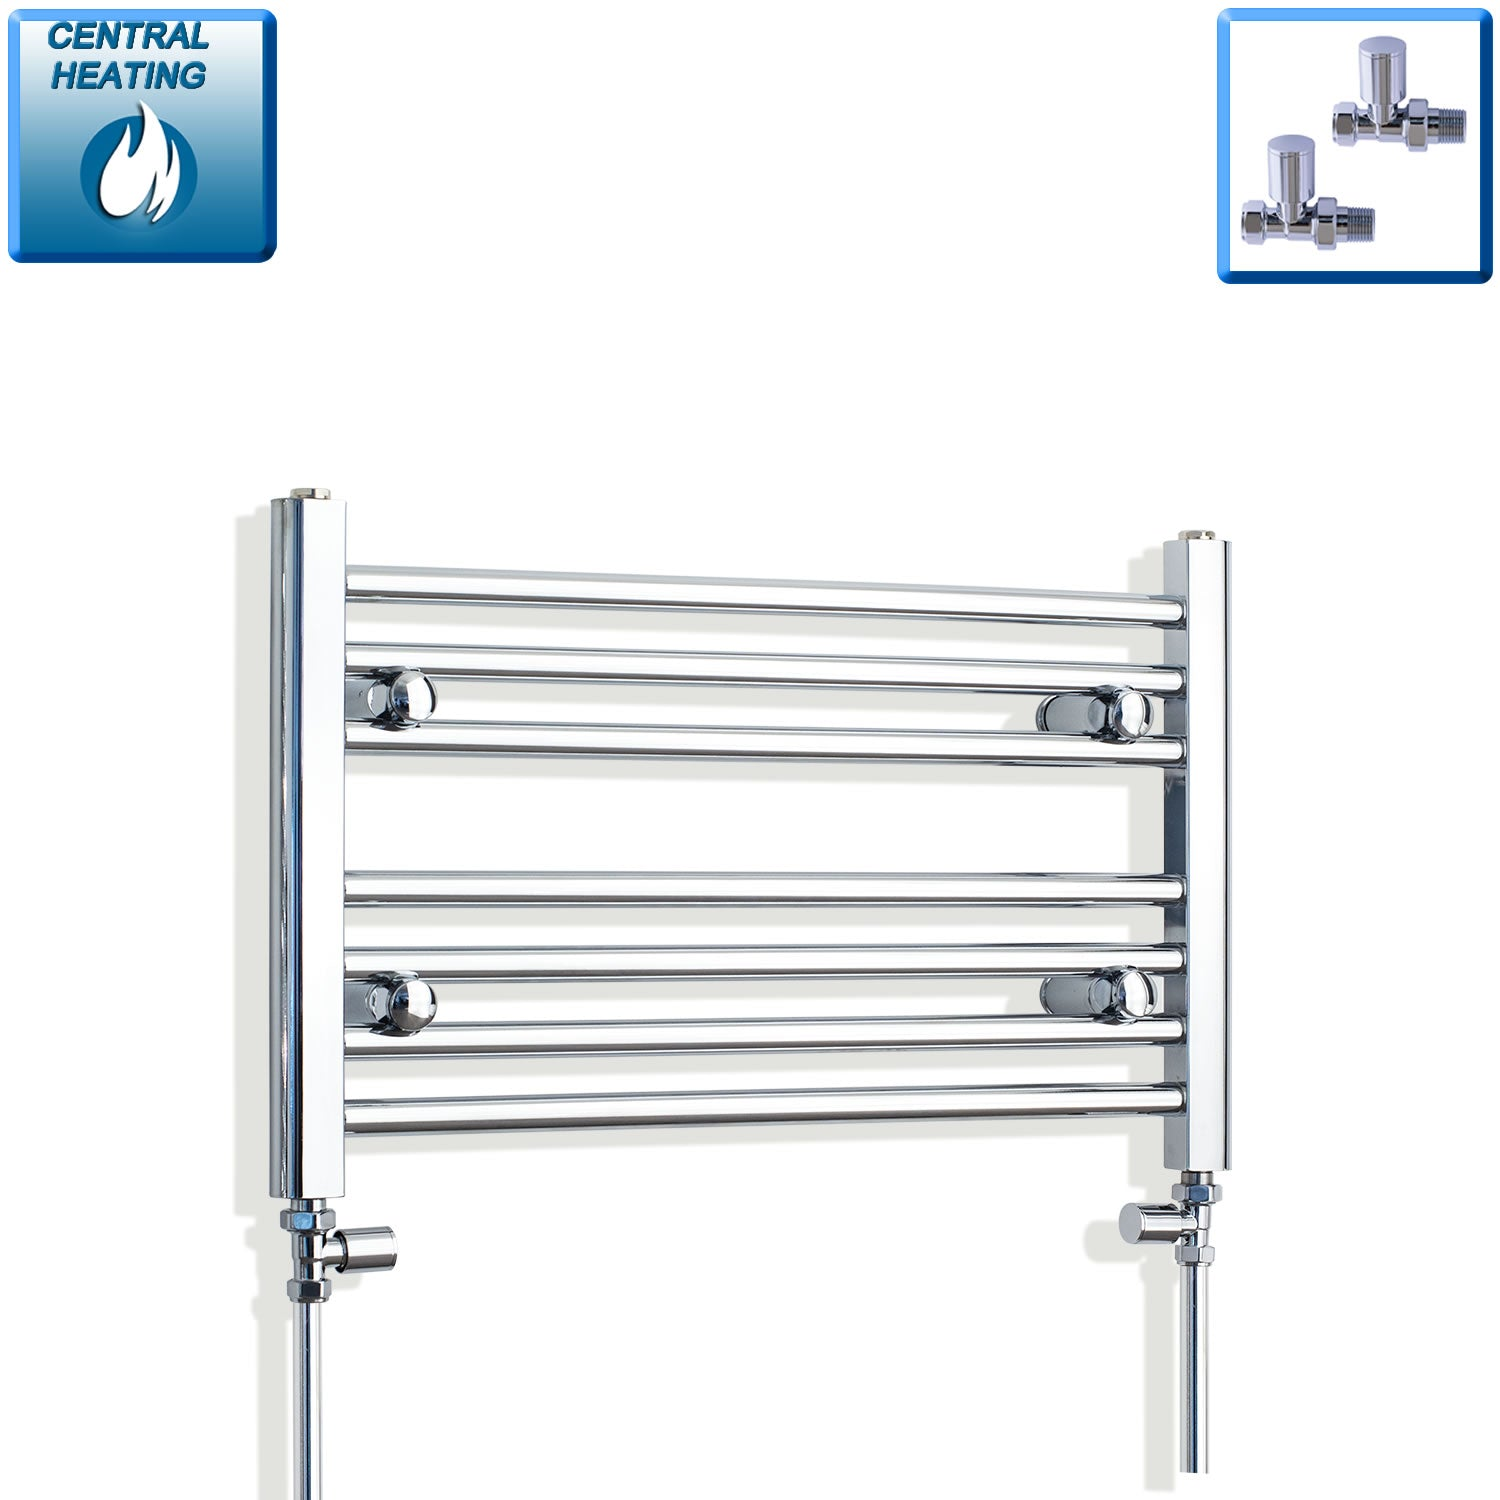 650mm Wide 400mm High Chrome Towel Rail Radiator With Straight Valve